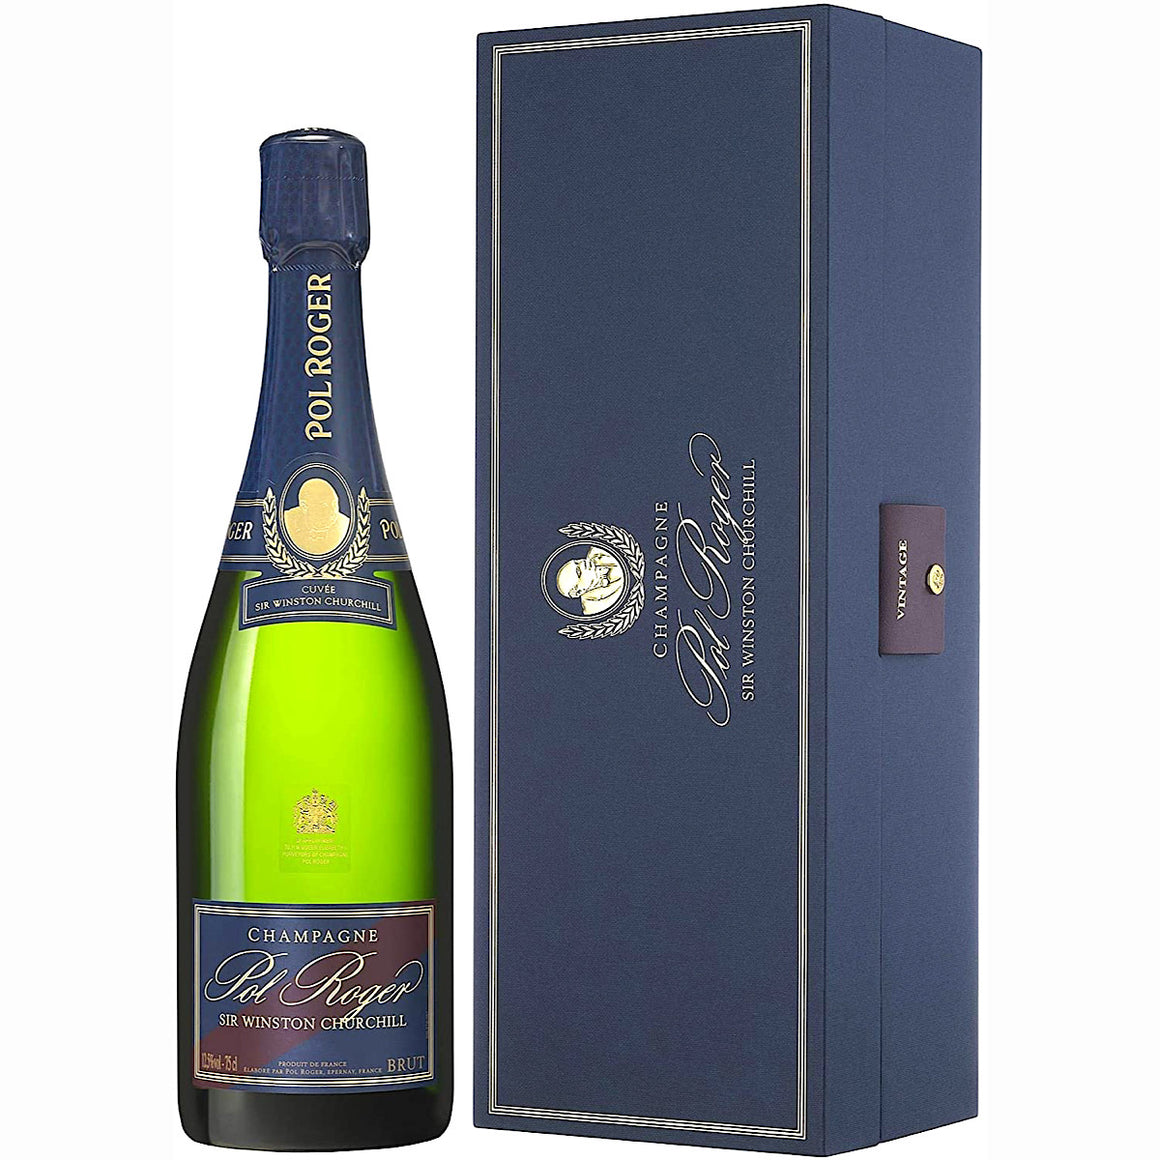 2009 Pol Roger Cuvée Sir Winston Churchill Champagne GIft Box 75cl